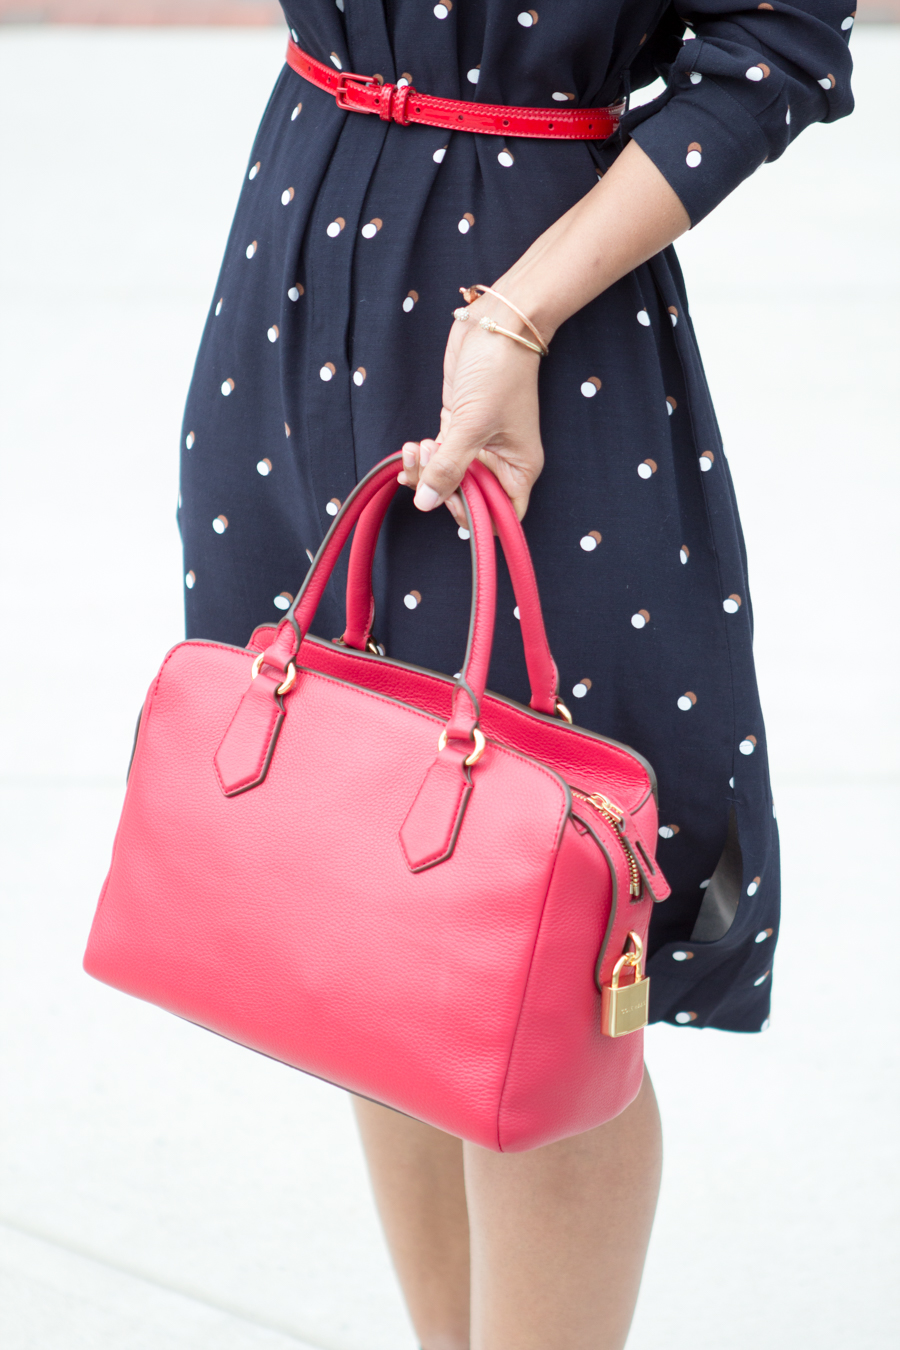 office style, work style, career woman, dress for success, corporate fashion, 9 to 5 style, office style, work wear, women's wear, petite fashion, ann taylor, satchel, red satchel, bright accents, off to work